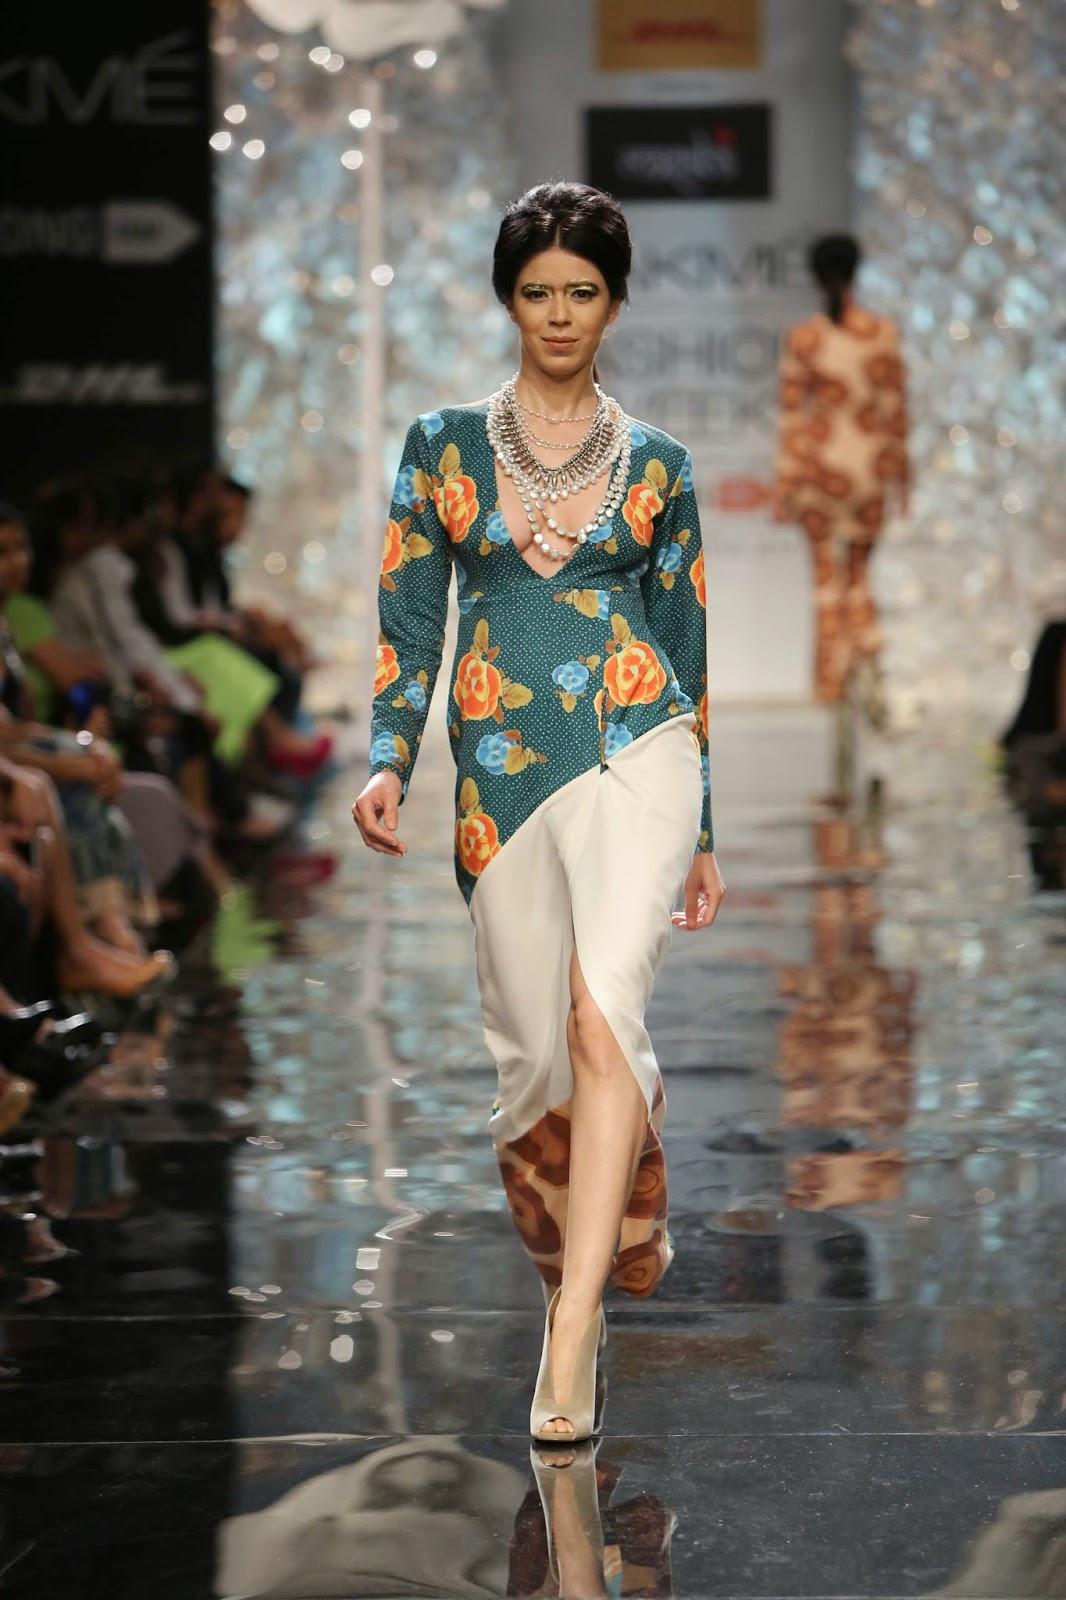 Model walking for Masaba Gupta.....www.aquaintperspective,blogspot.com